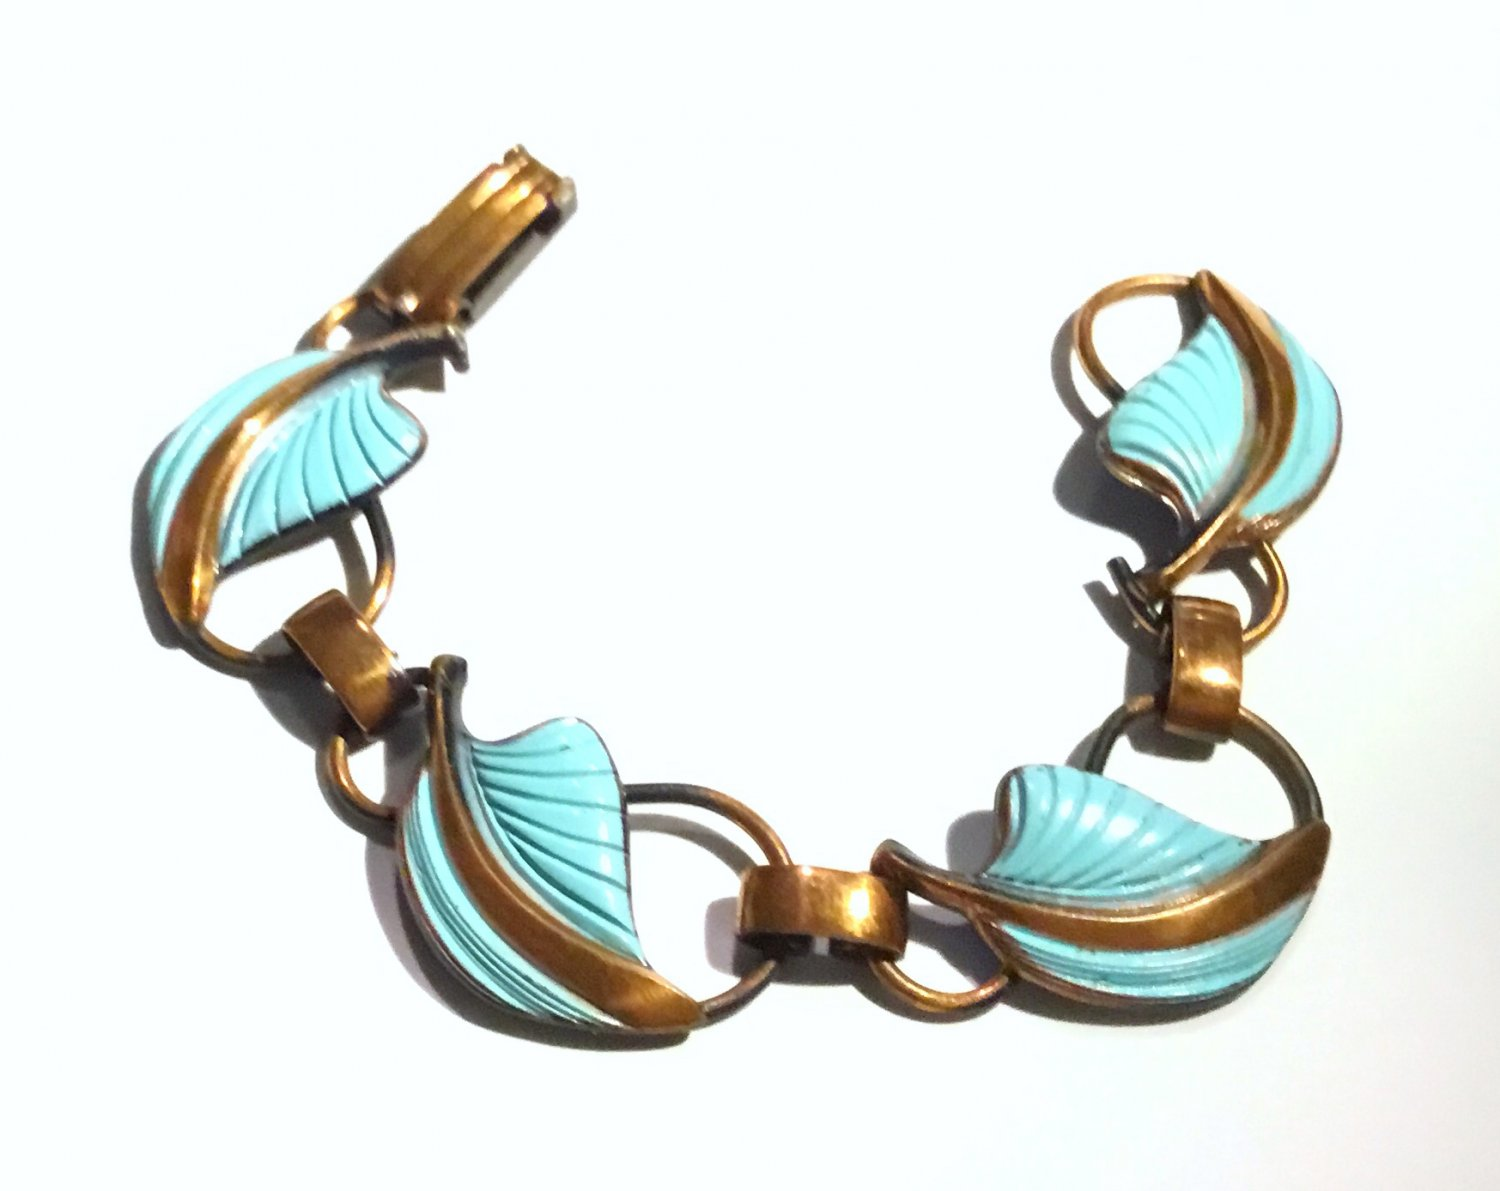 Vintage 1950s Beatnik/ Modernist Enamel and Copper Bracelet - Free USA Shipping